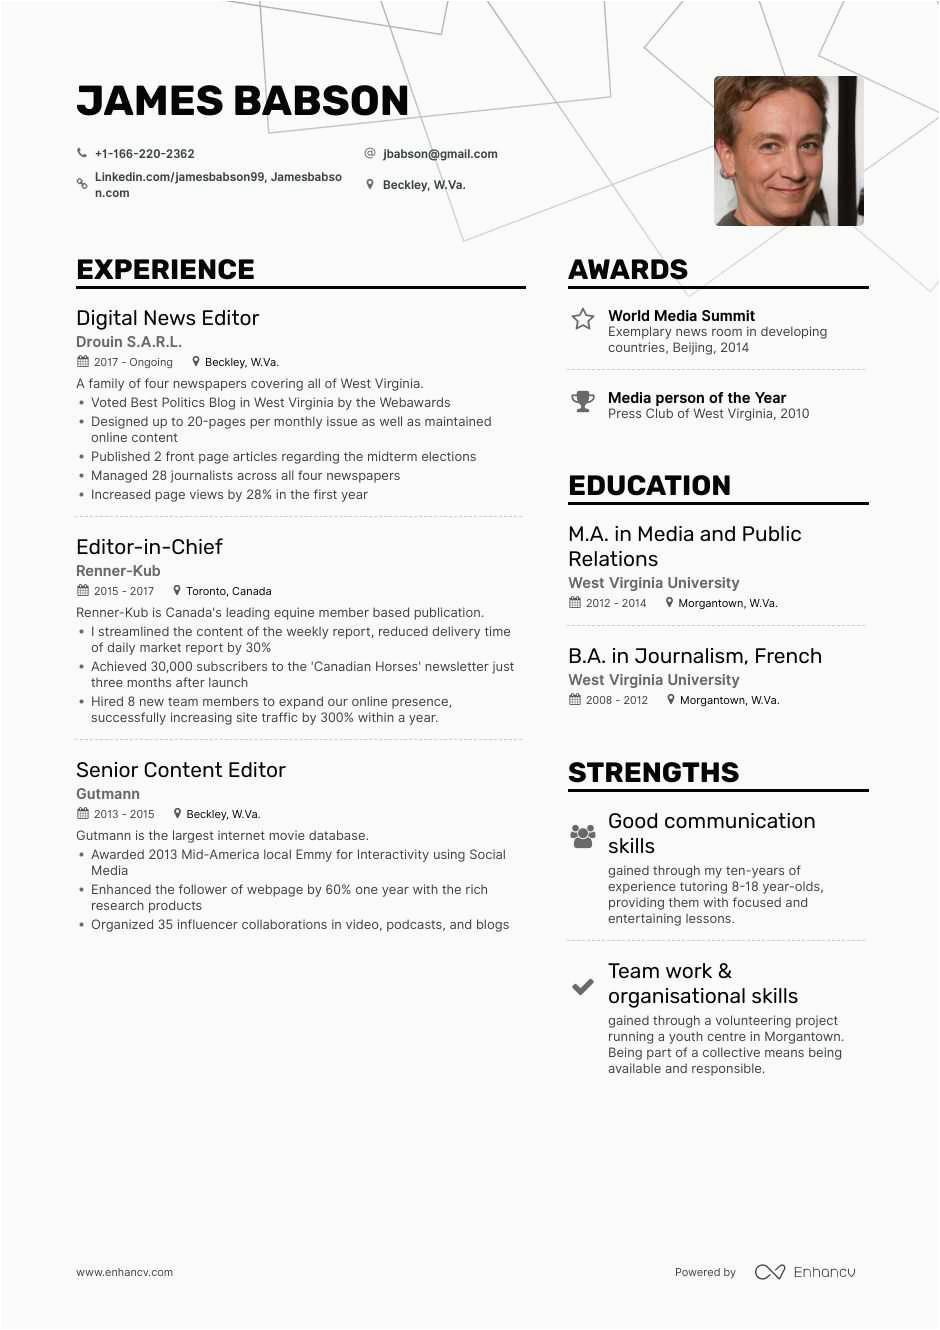 Sample Resume that Can Be Edited Editor Resume Samples A Step by Step Guide for 2020